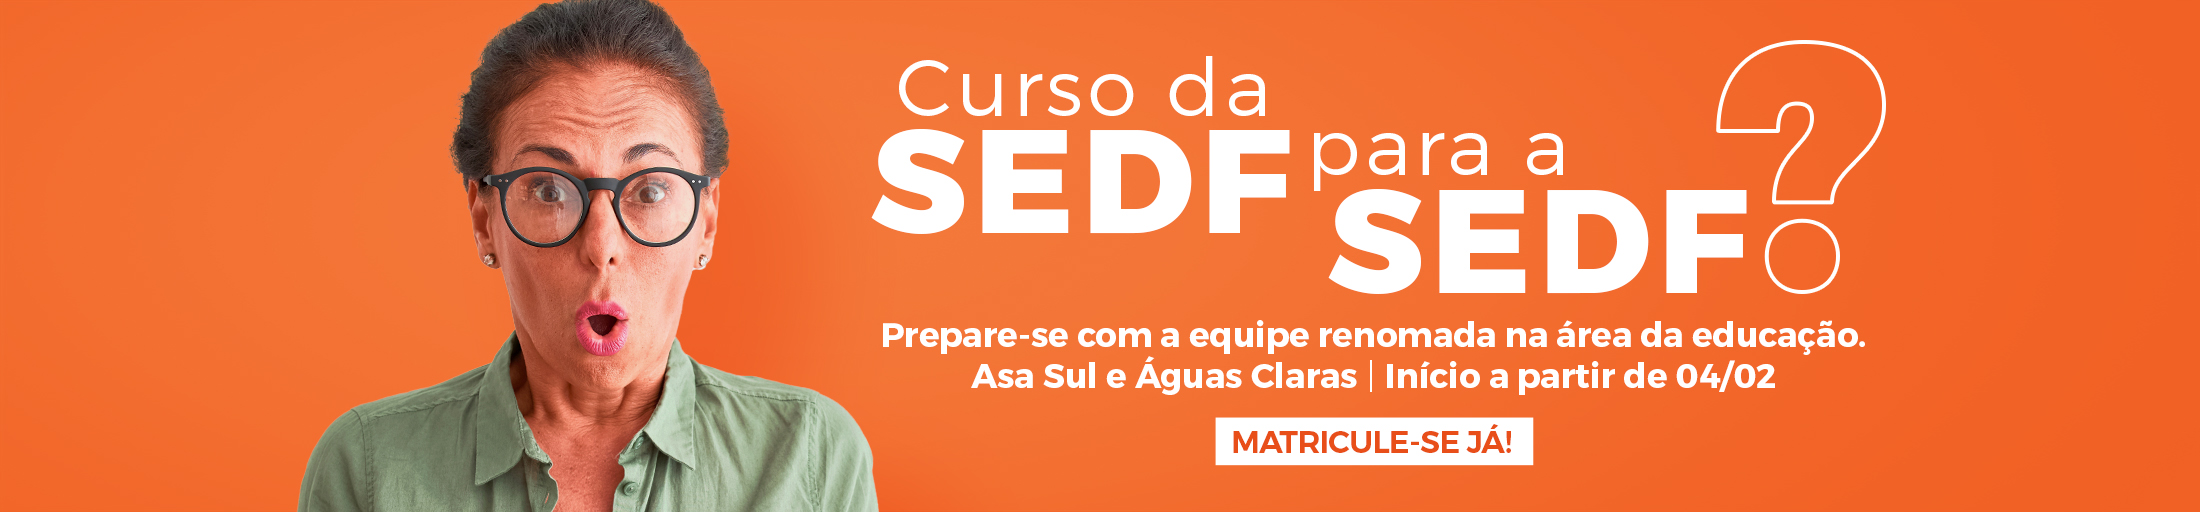 BANNER_SITE_VOLTA_AS_AULAS_2020_SEDF